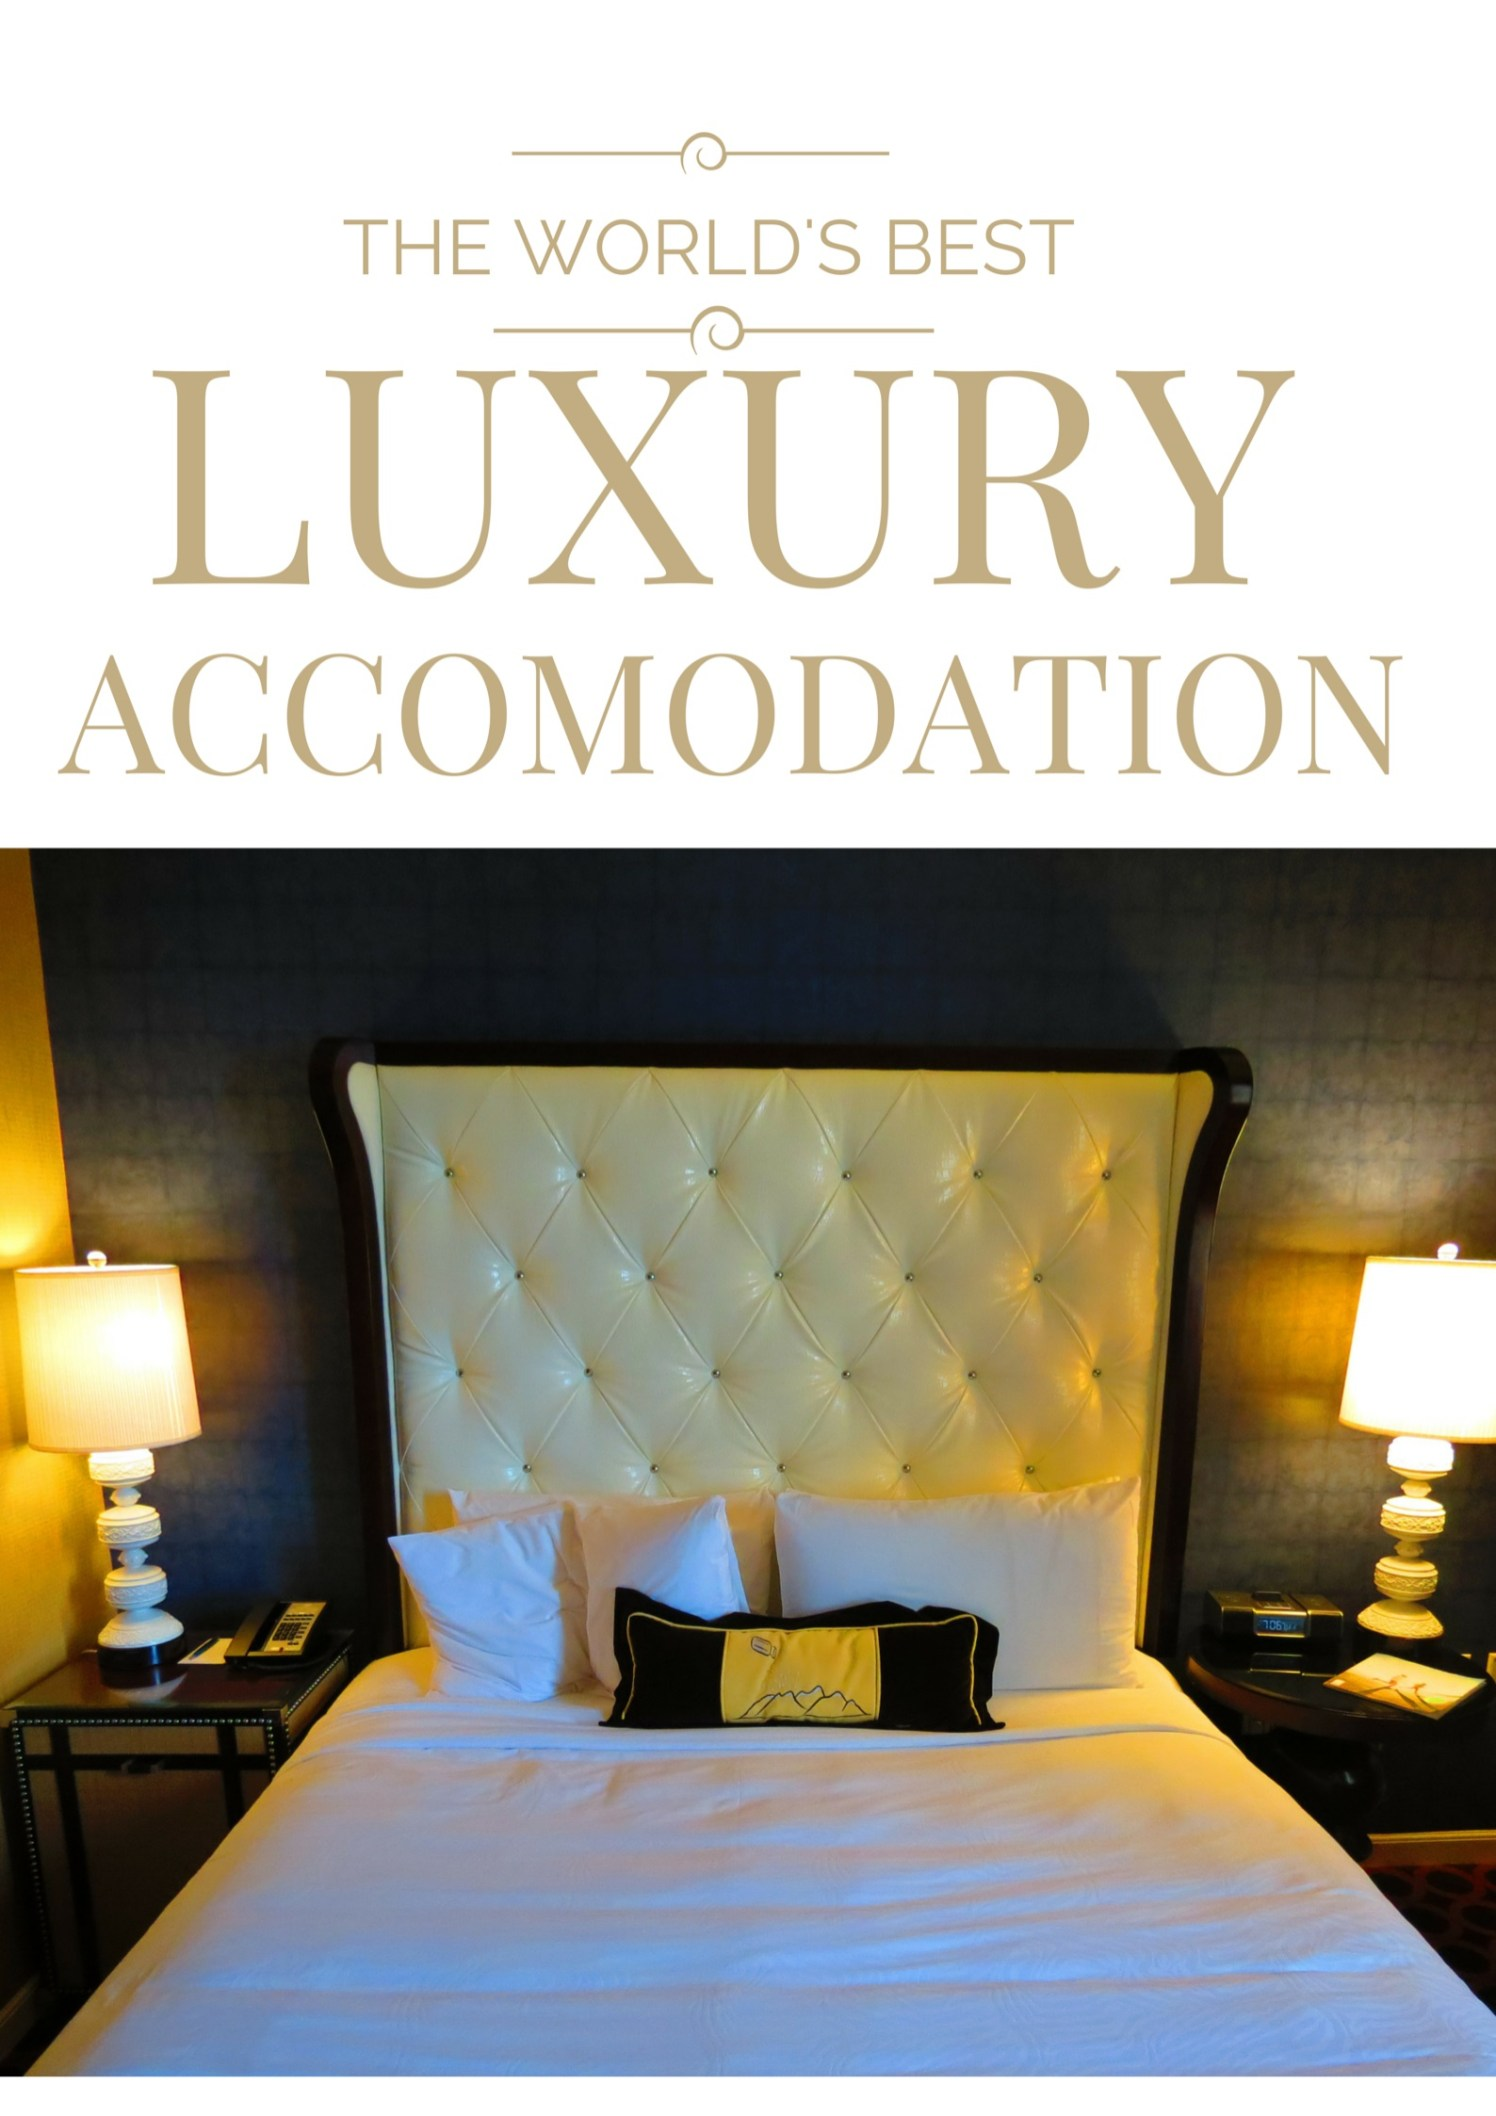 The world's best luxury accommodation.